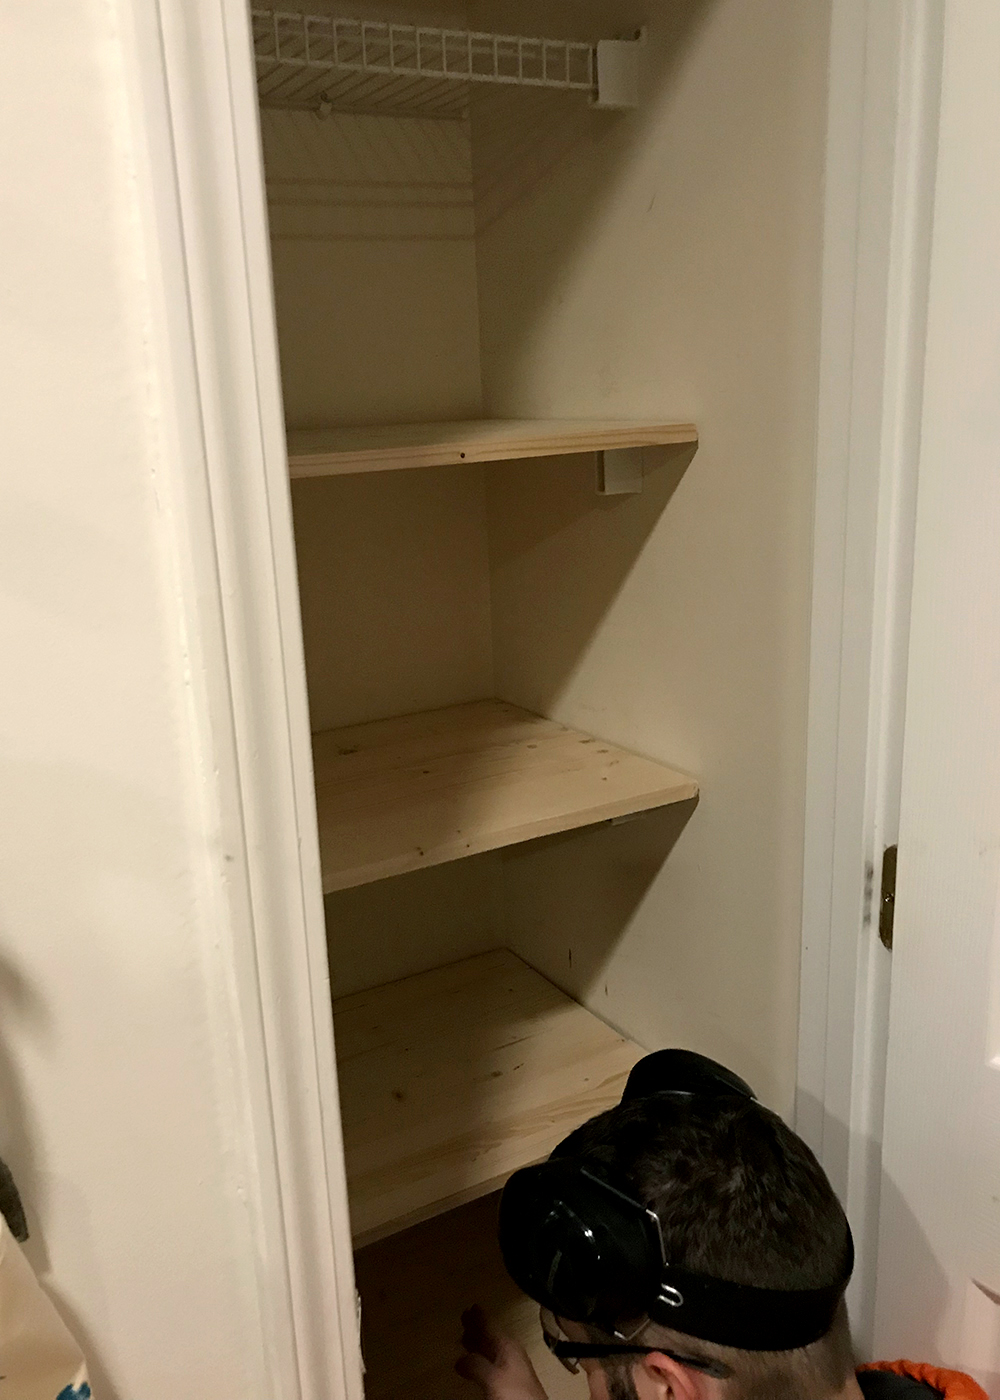 check the width of each shelf before removing wire shelving